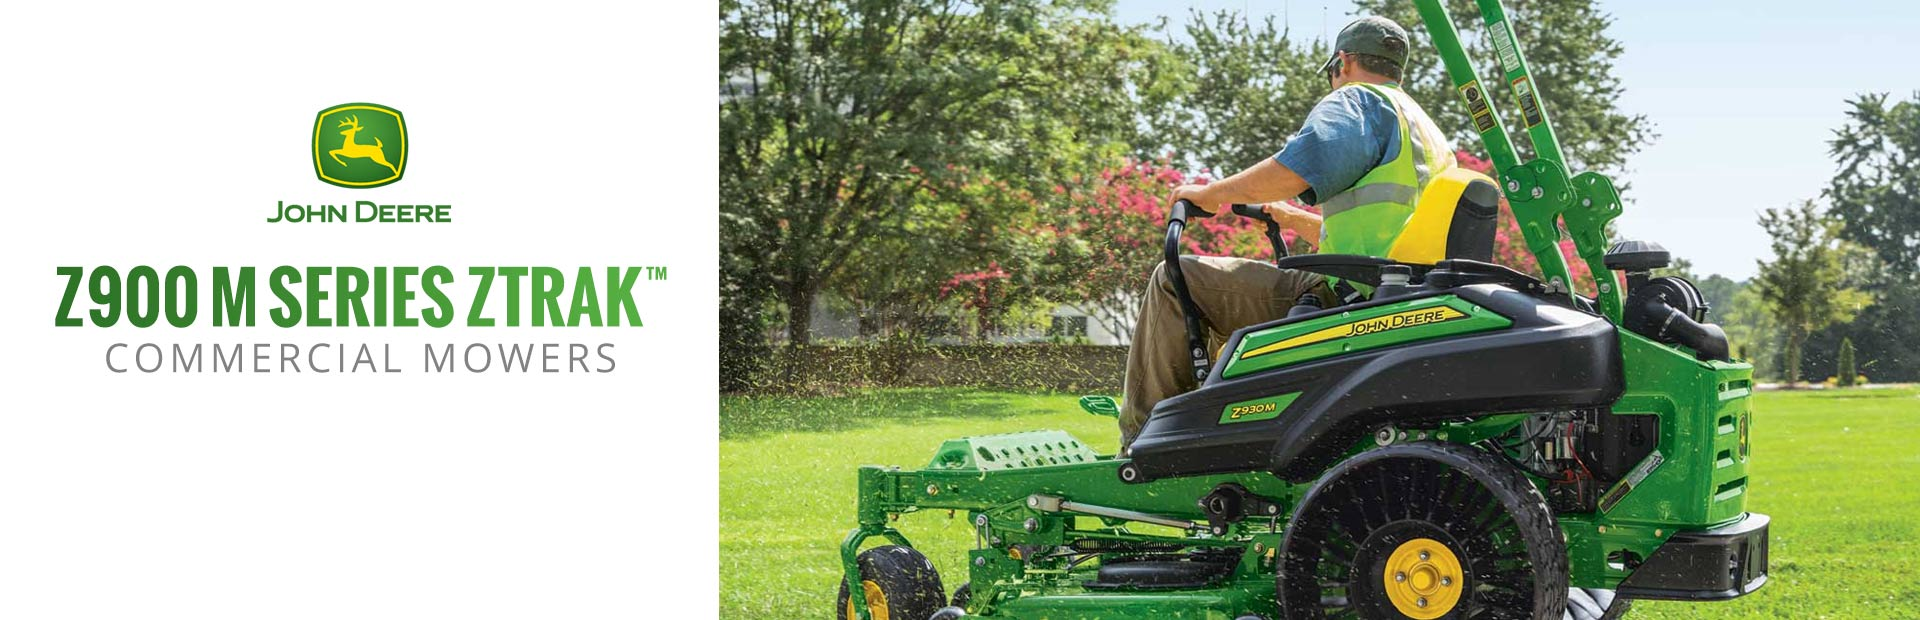 Z900 M Series ZTrak™ Commercial Mowers